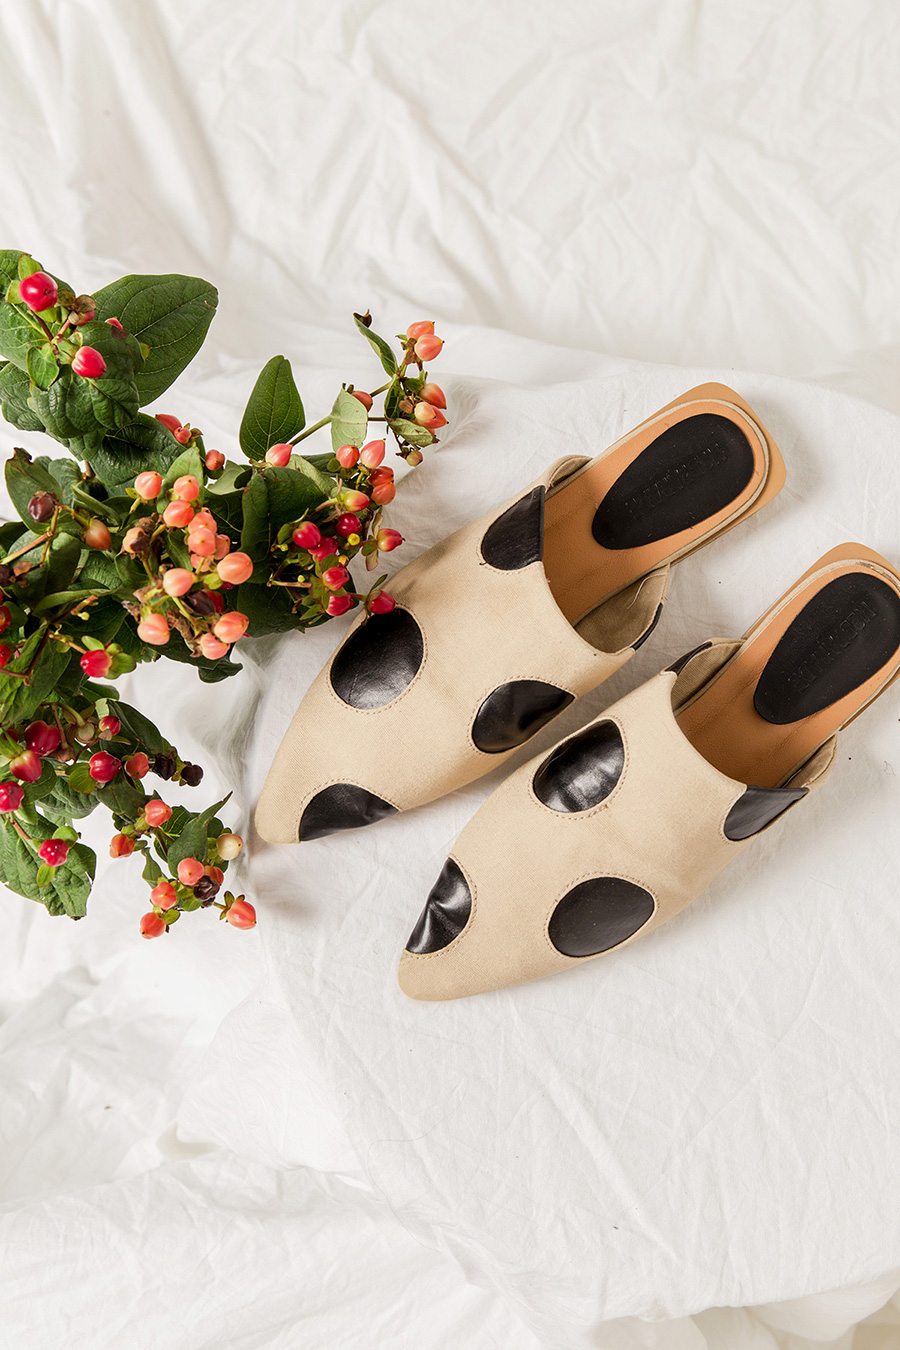 *SALE* ODETTE POLKA DOT SLIP ON MULES - SAND